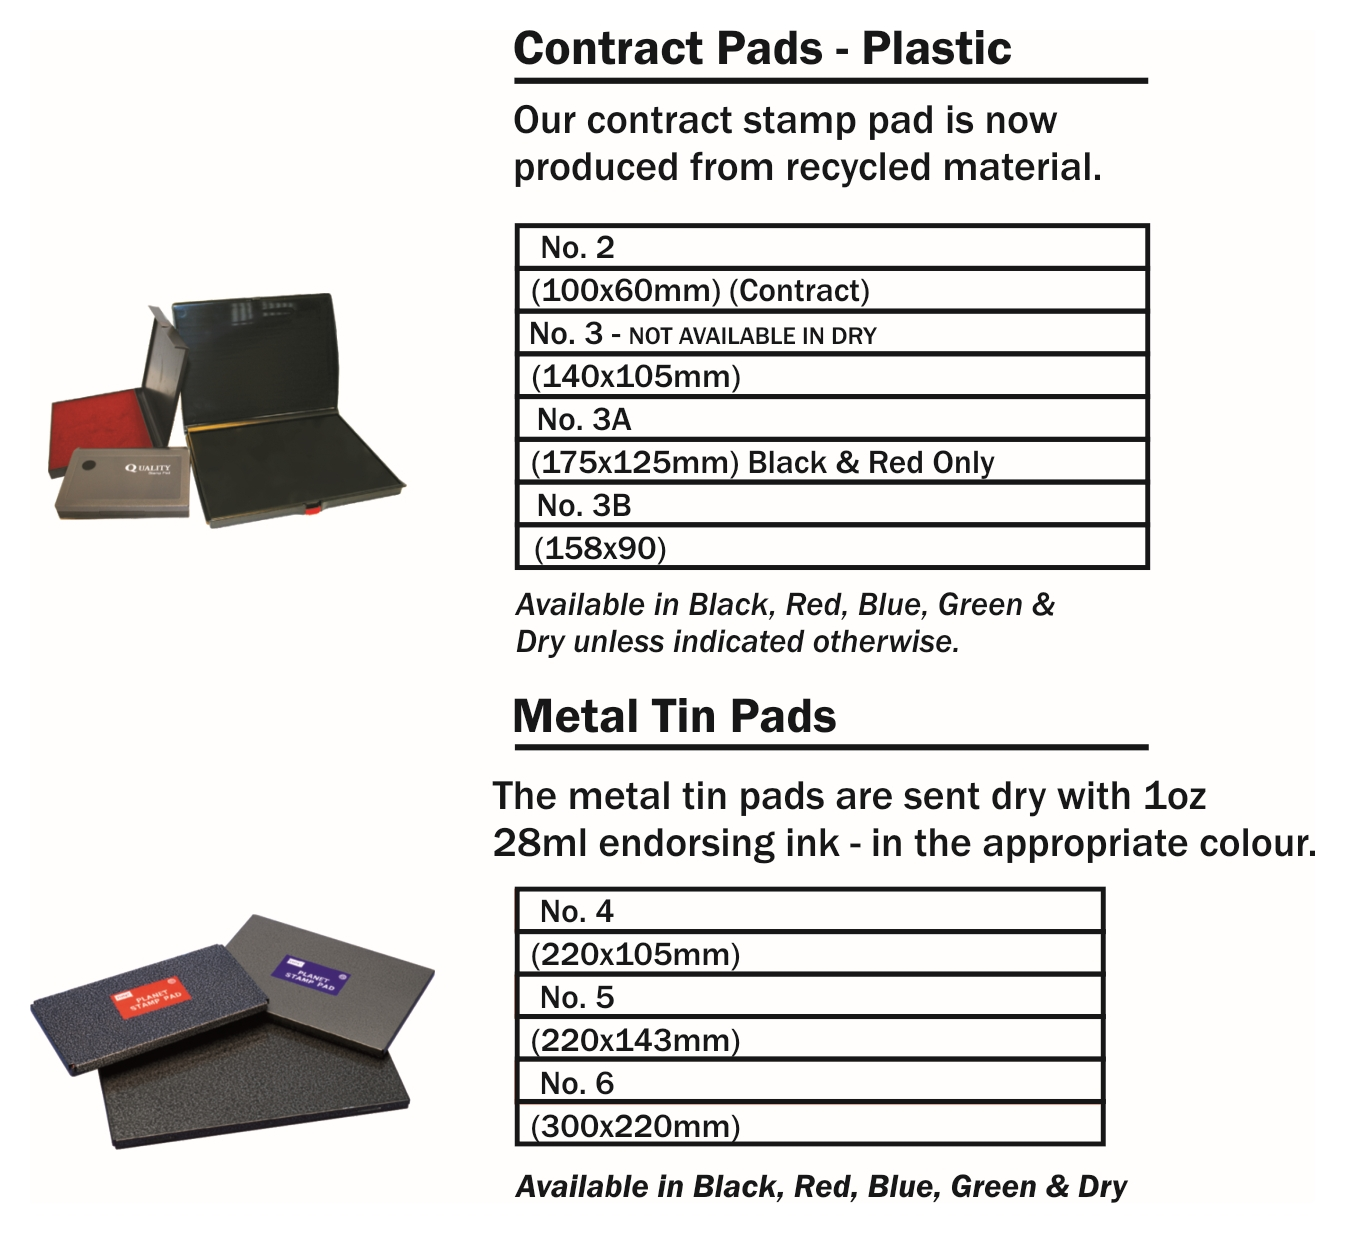 Ink Pads for Rubber Stamps - We stock a full range of ink pads and inks to suit all sizes in our Traditional Rubber Stamp range.